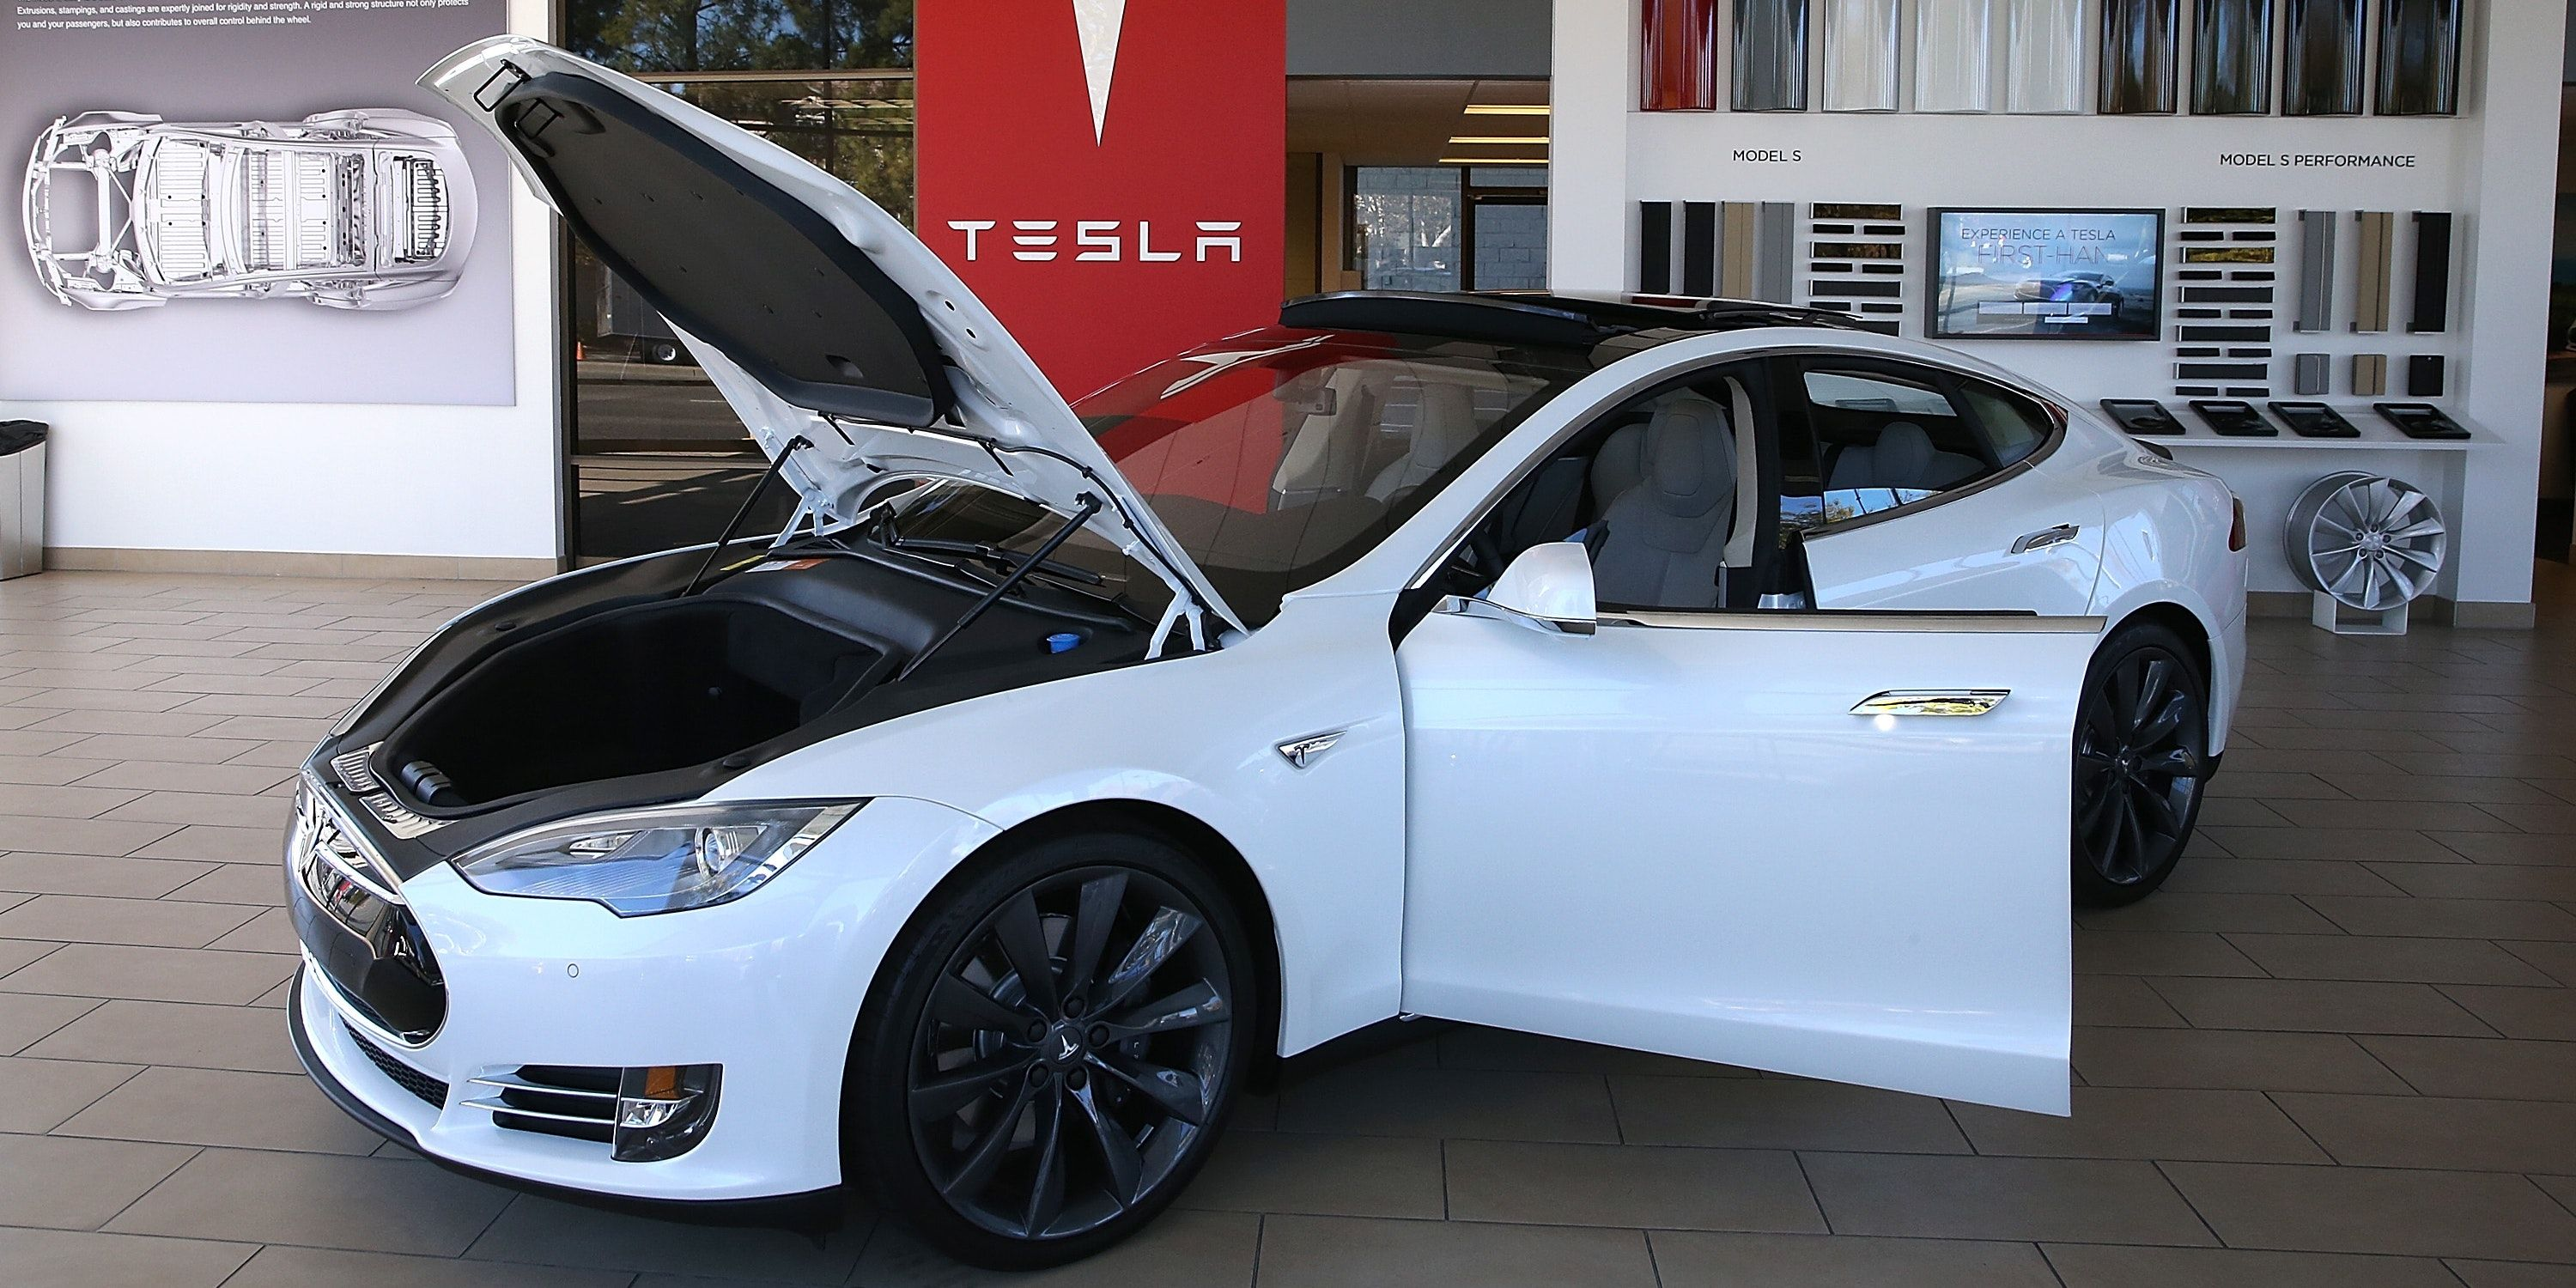 Will Insuremytesla Disrupt Auto Insurance Like Tesla Did The Auto